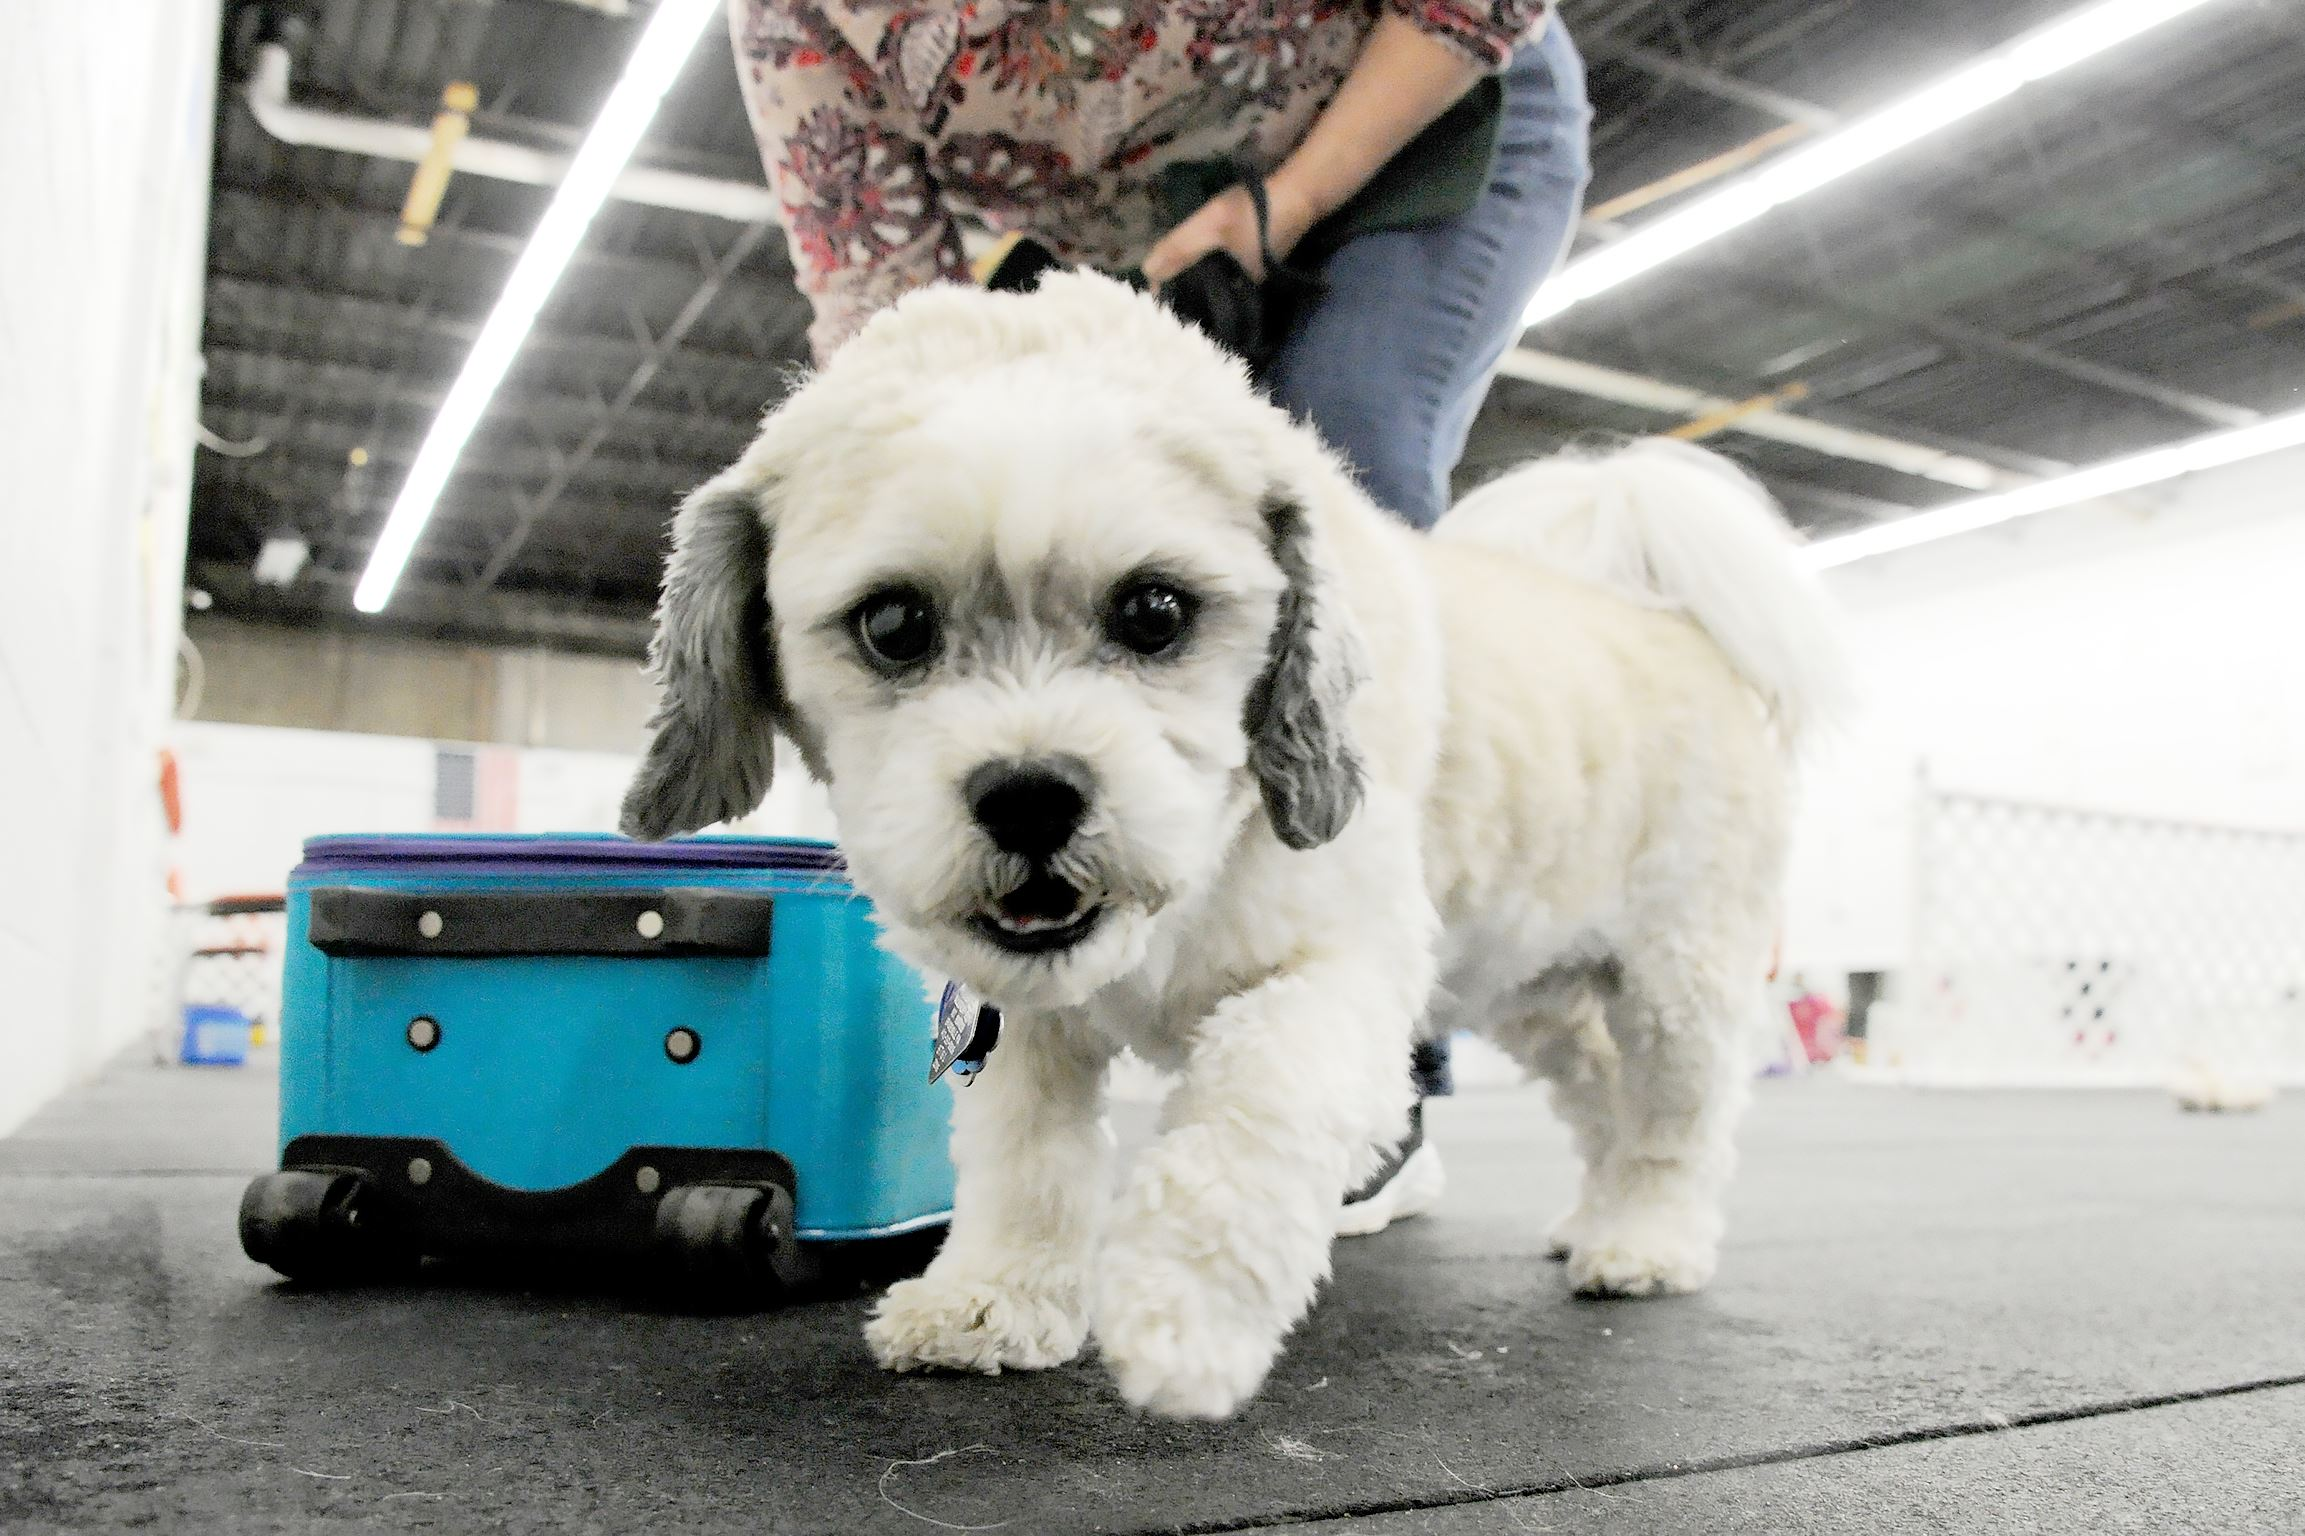 20170317lf-Dog01 Molly, a 7-year-old Shih Tzu-Lhaso apso mix belonging to Amy Sandhapen of Whitehall, participates in a nose work class at Keystone Canine Training Club in Baldwin Borough. Molly and other dogs are trained to find a hidden scented object without verbal instructions.